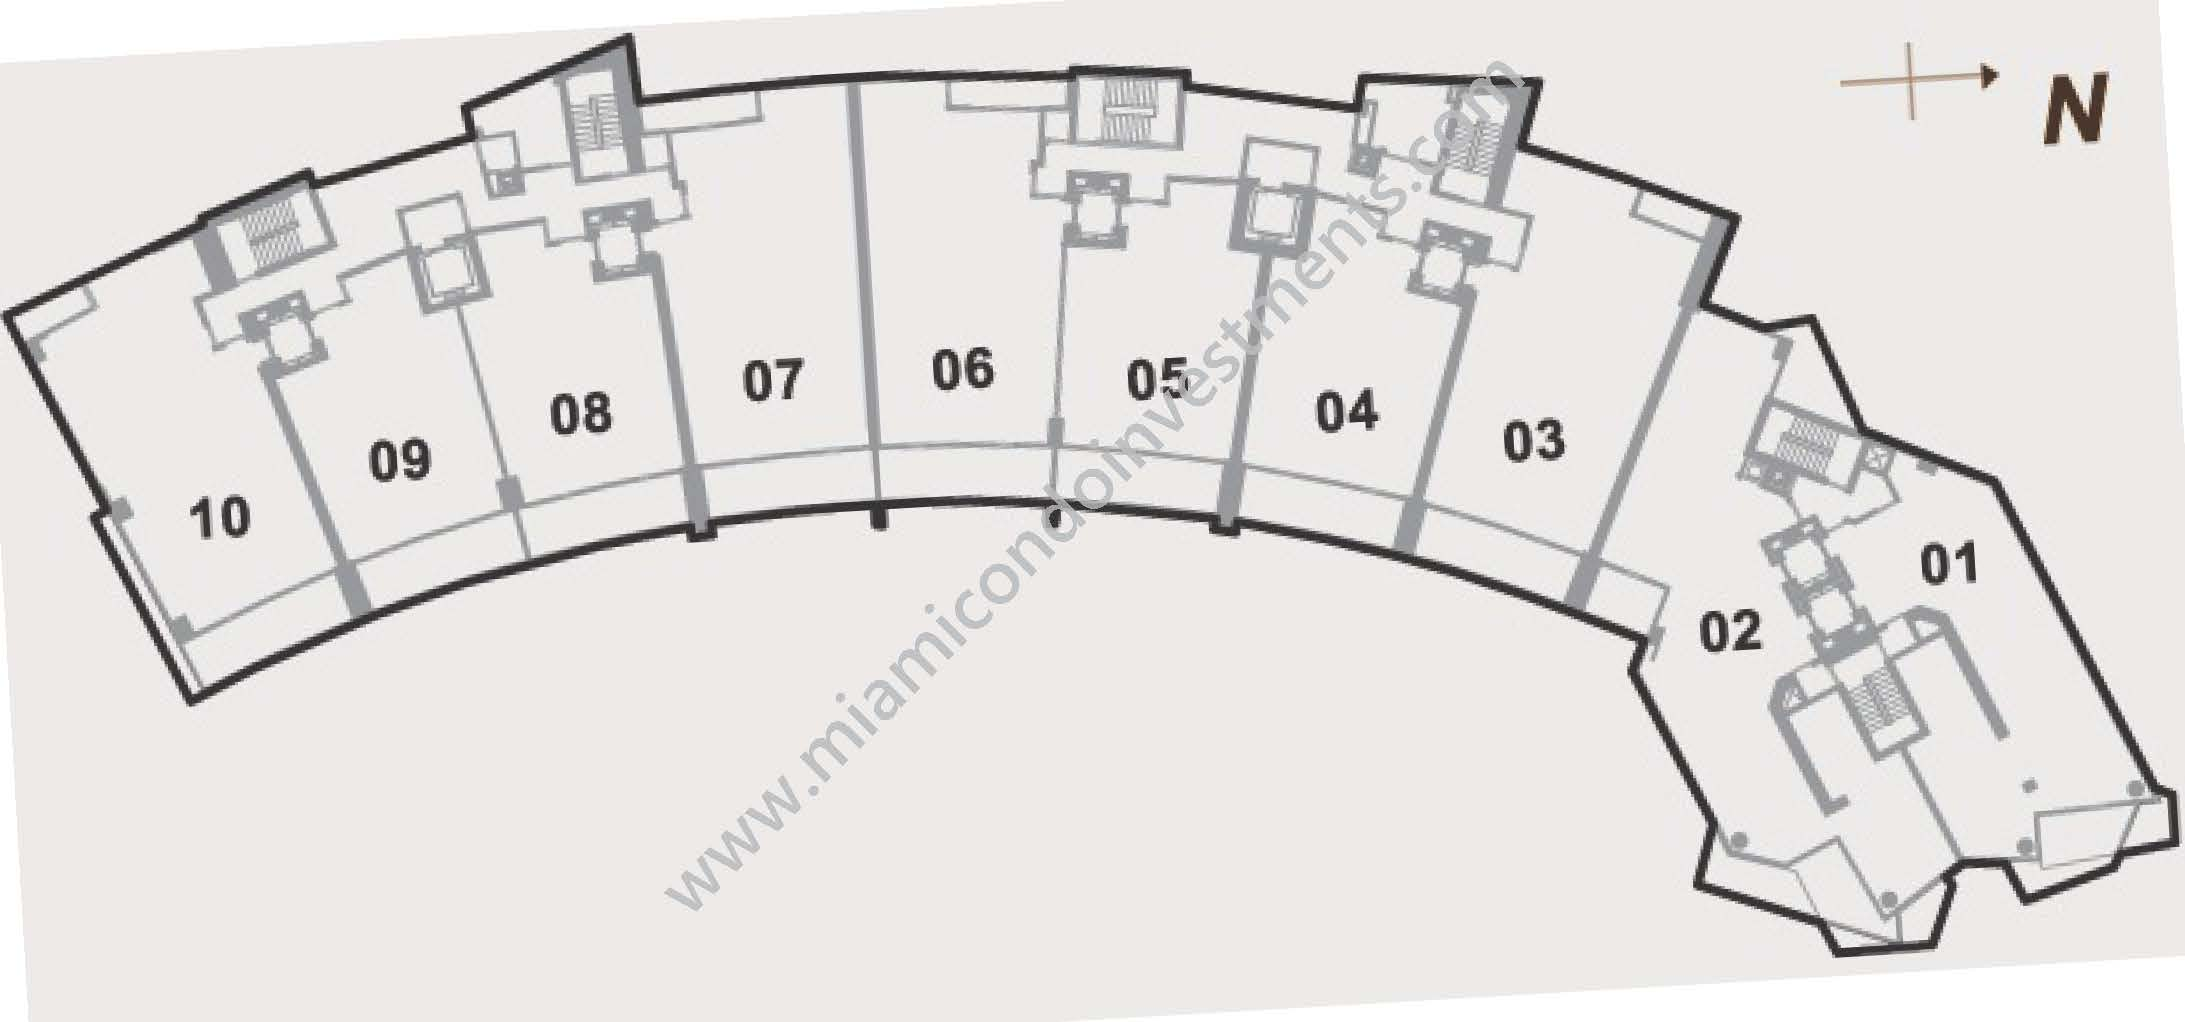 paramount-bay-site-plan